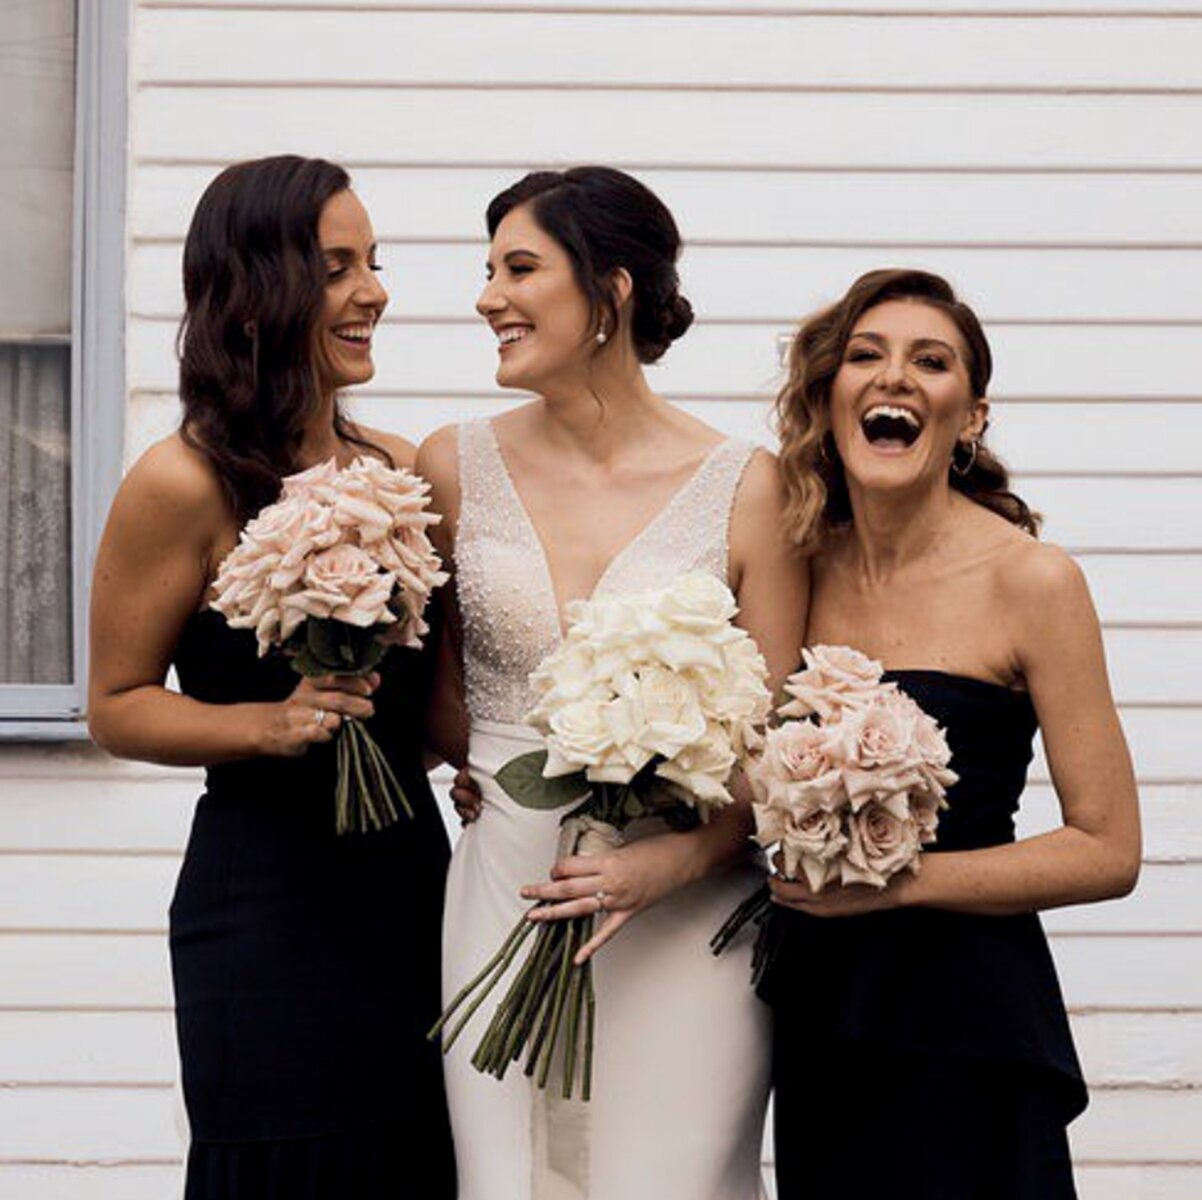 sydney-wedding-florist-flowers-packages-rose-blush-price-cost-how-much